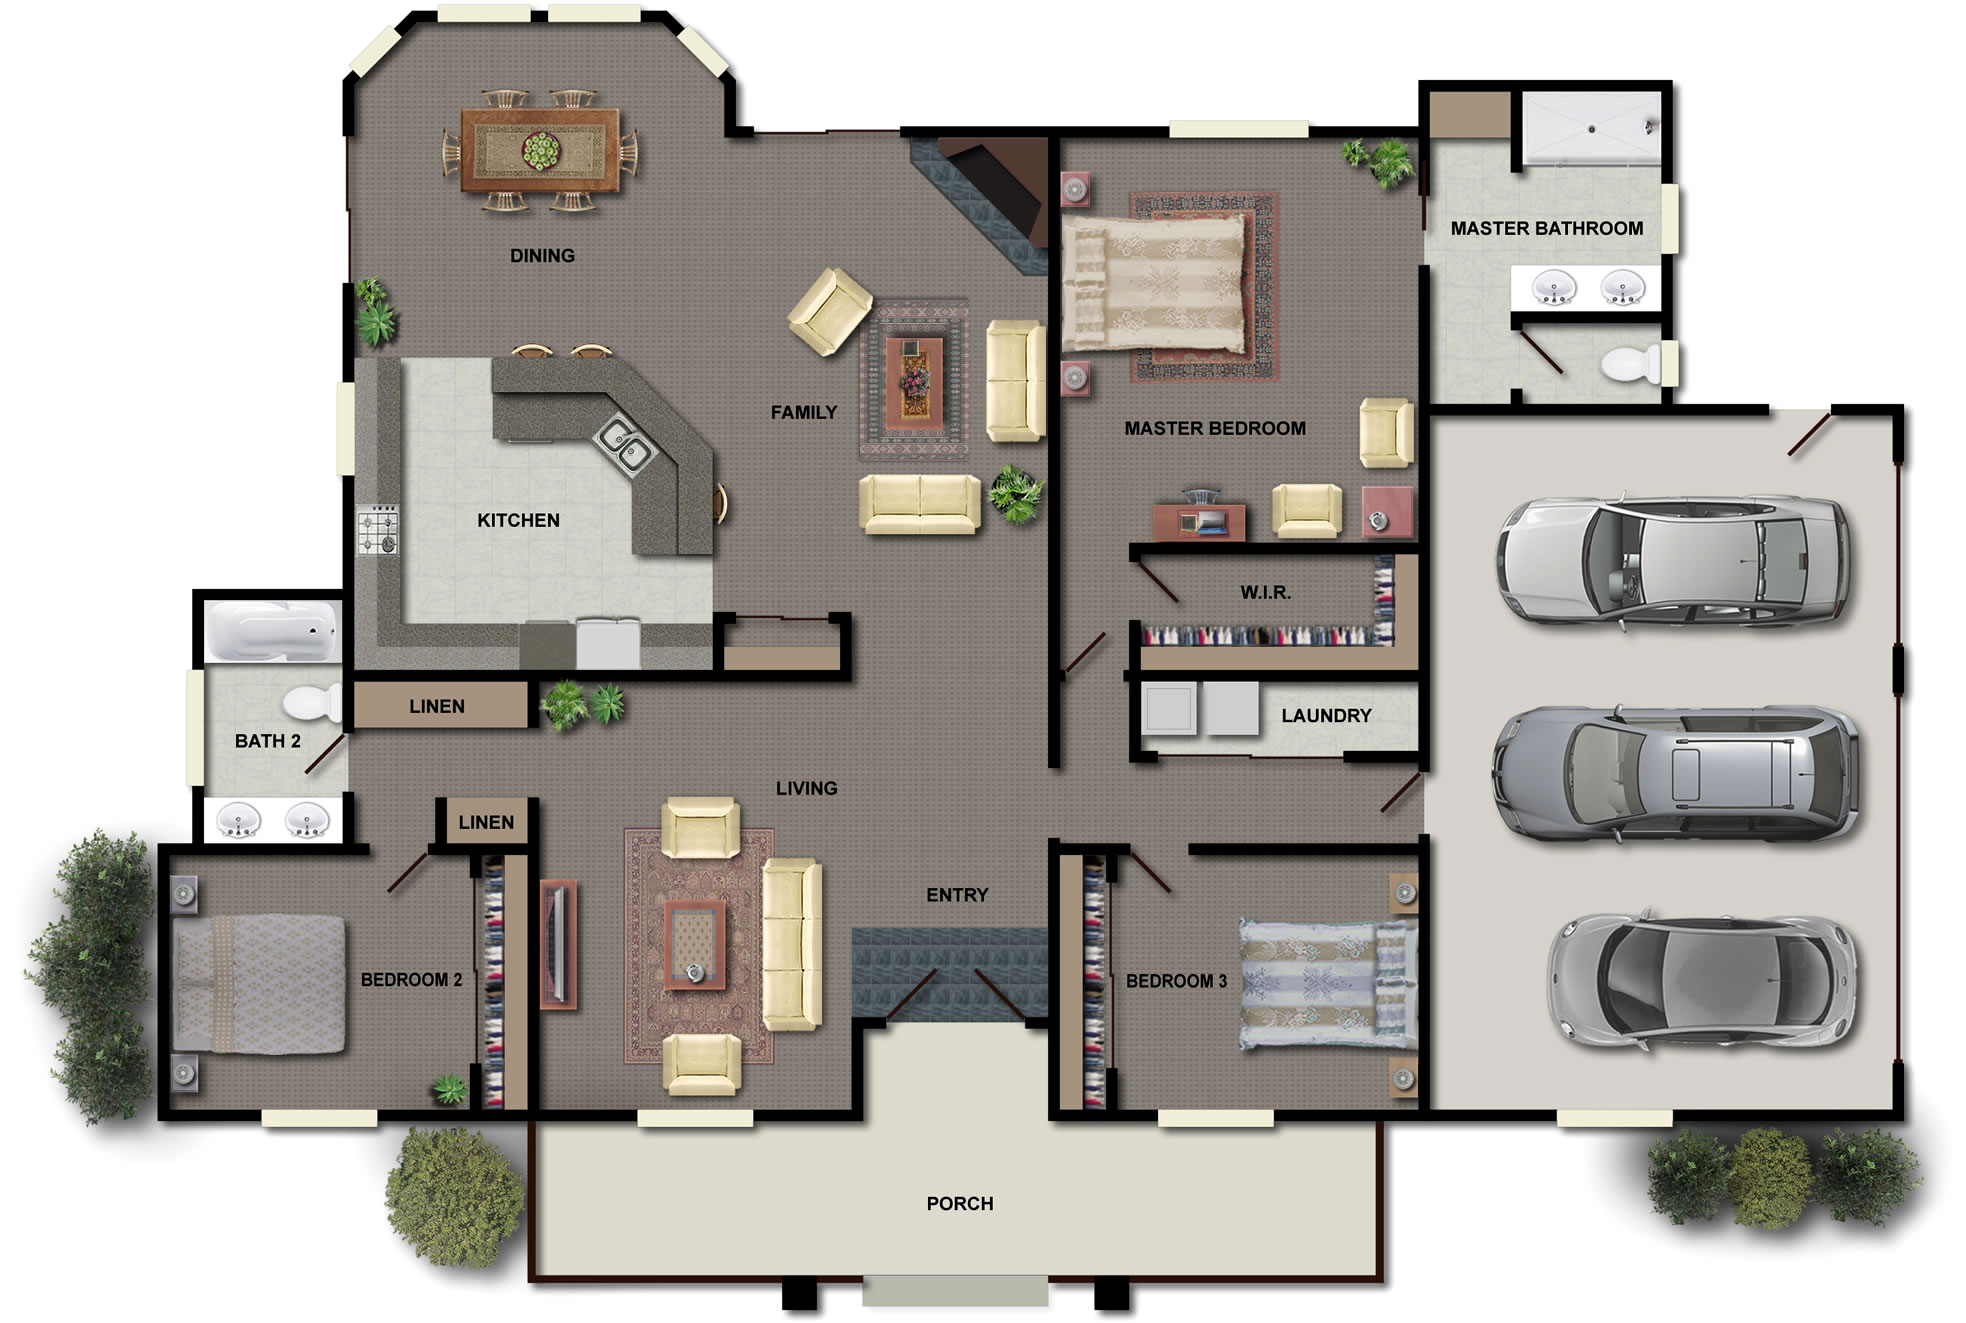 House plans with safe rooms homesfeed for Floor plans with safe rooms